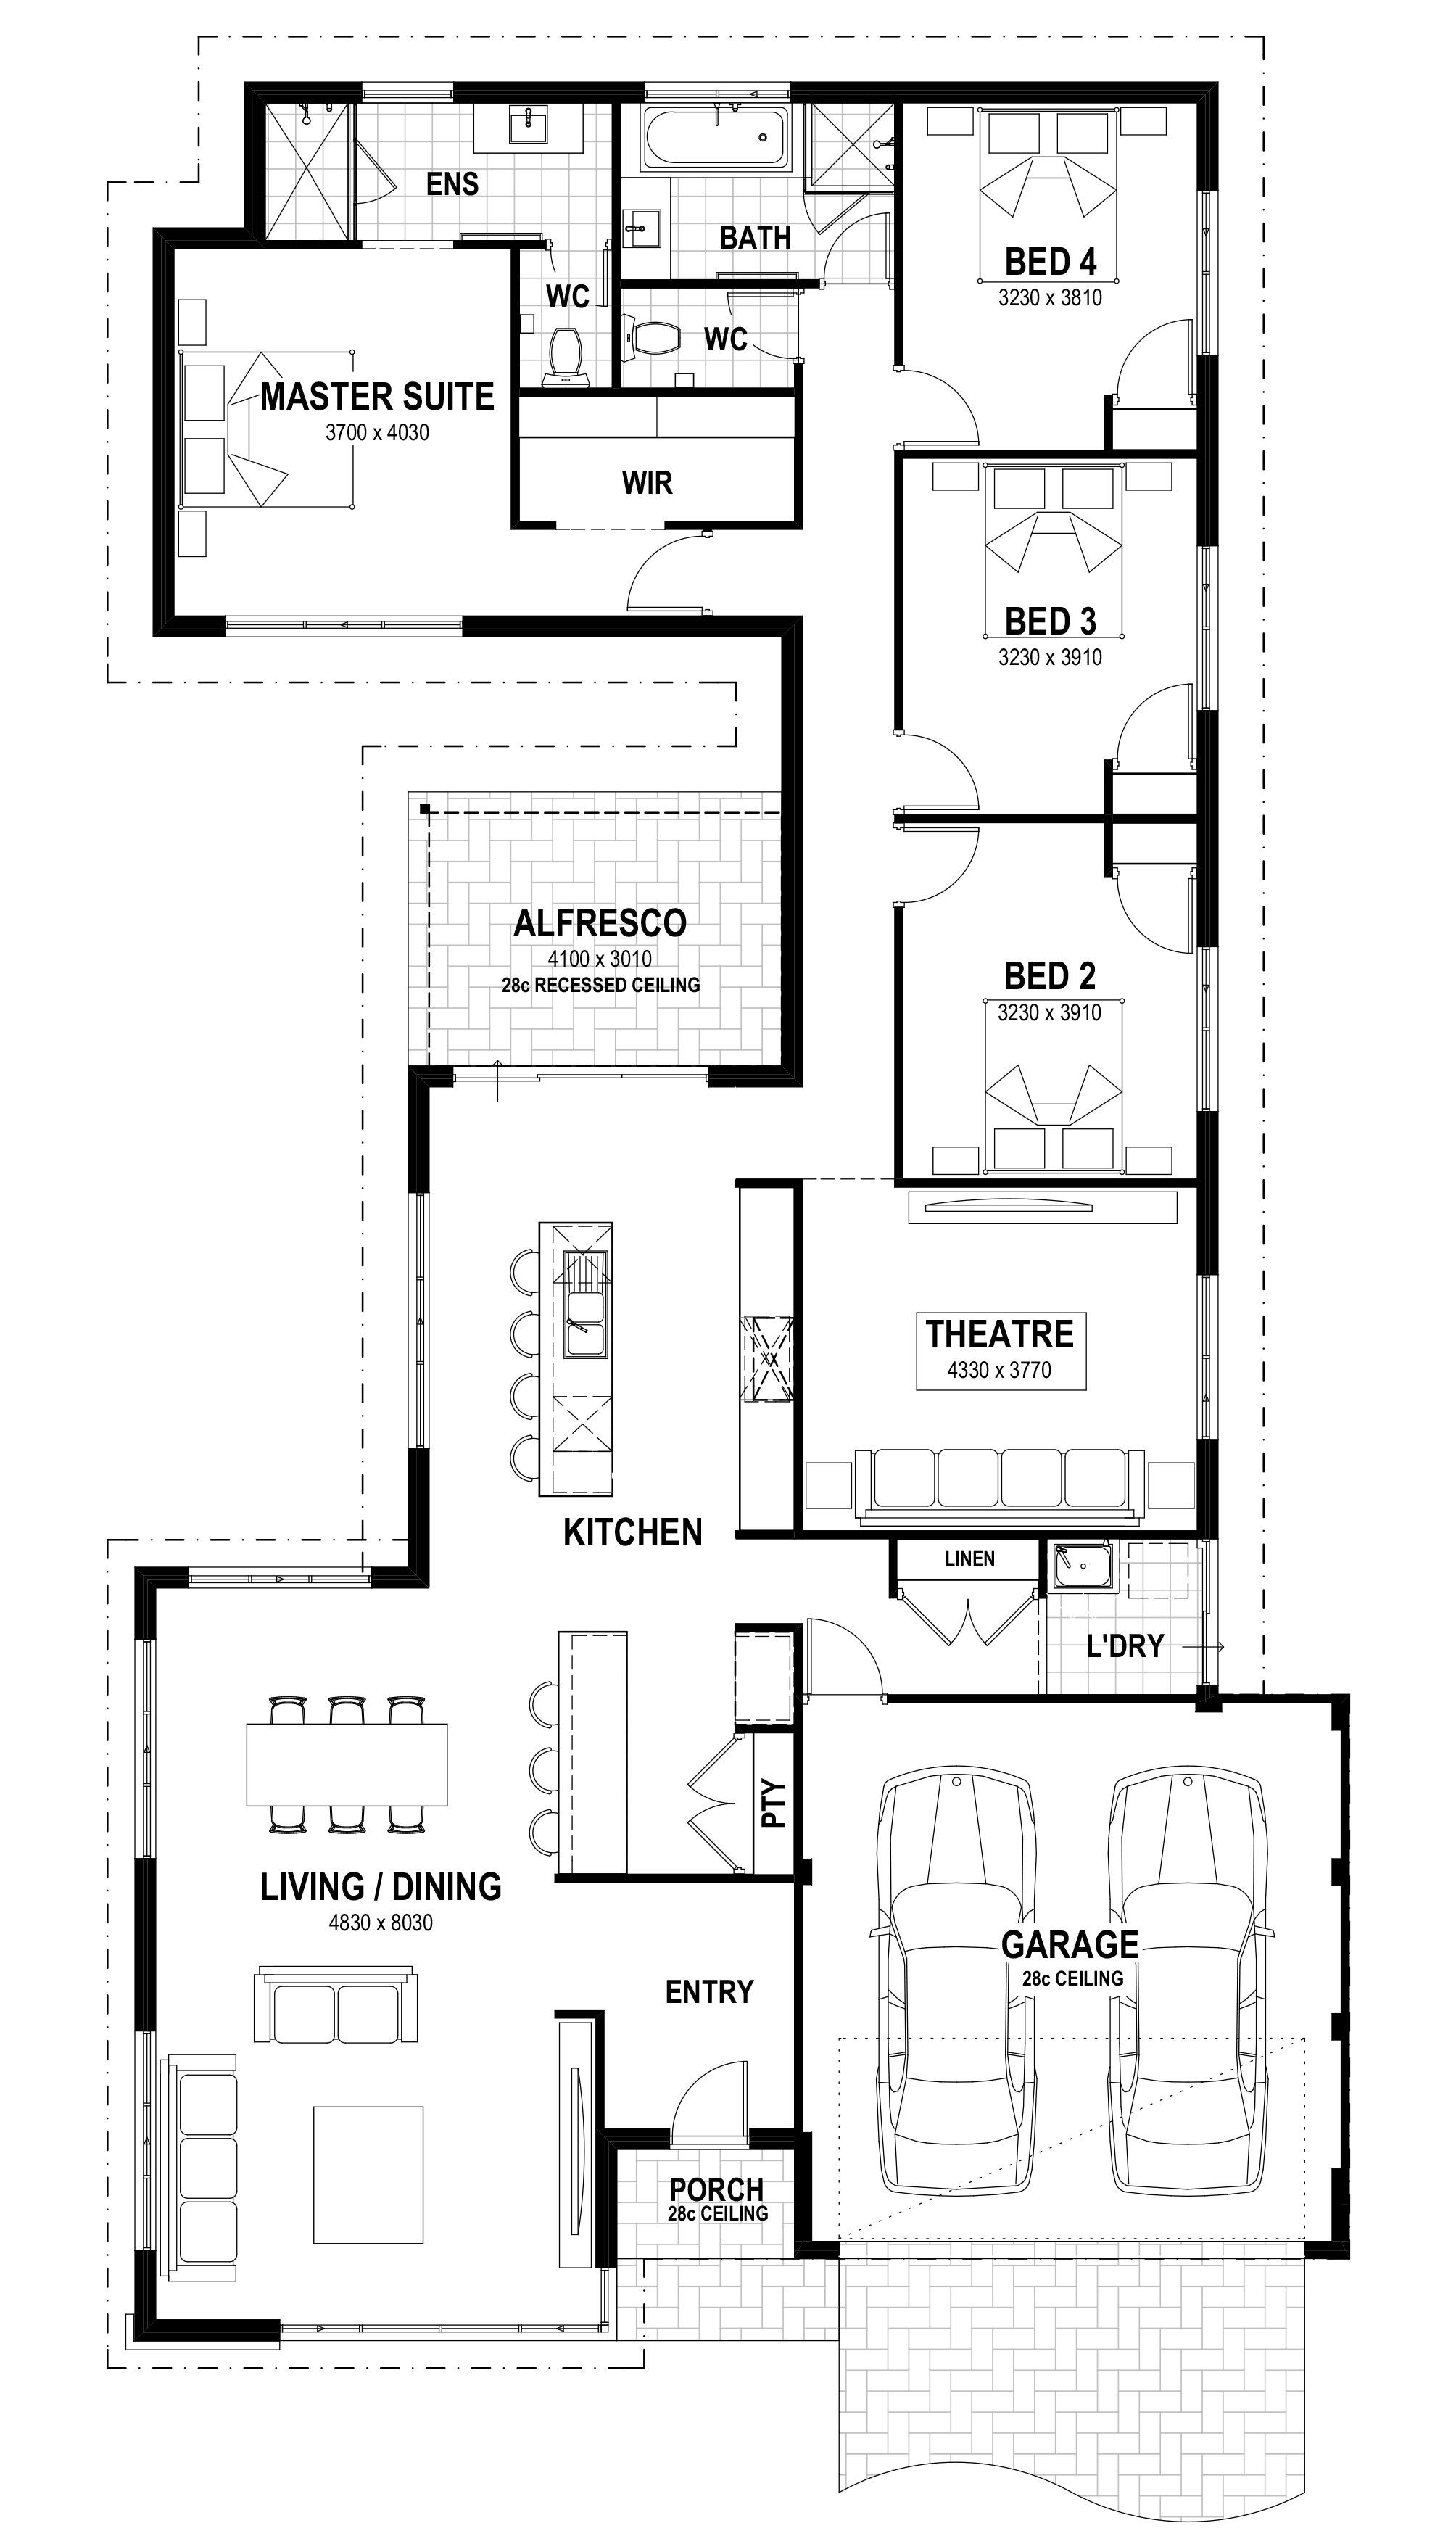 Pin By Assia Belamri On Floor Plans In Australia Home Design Floor Plans House Layout Plans New House Plans